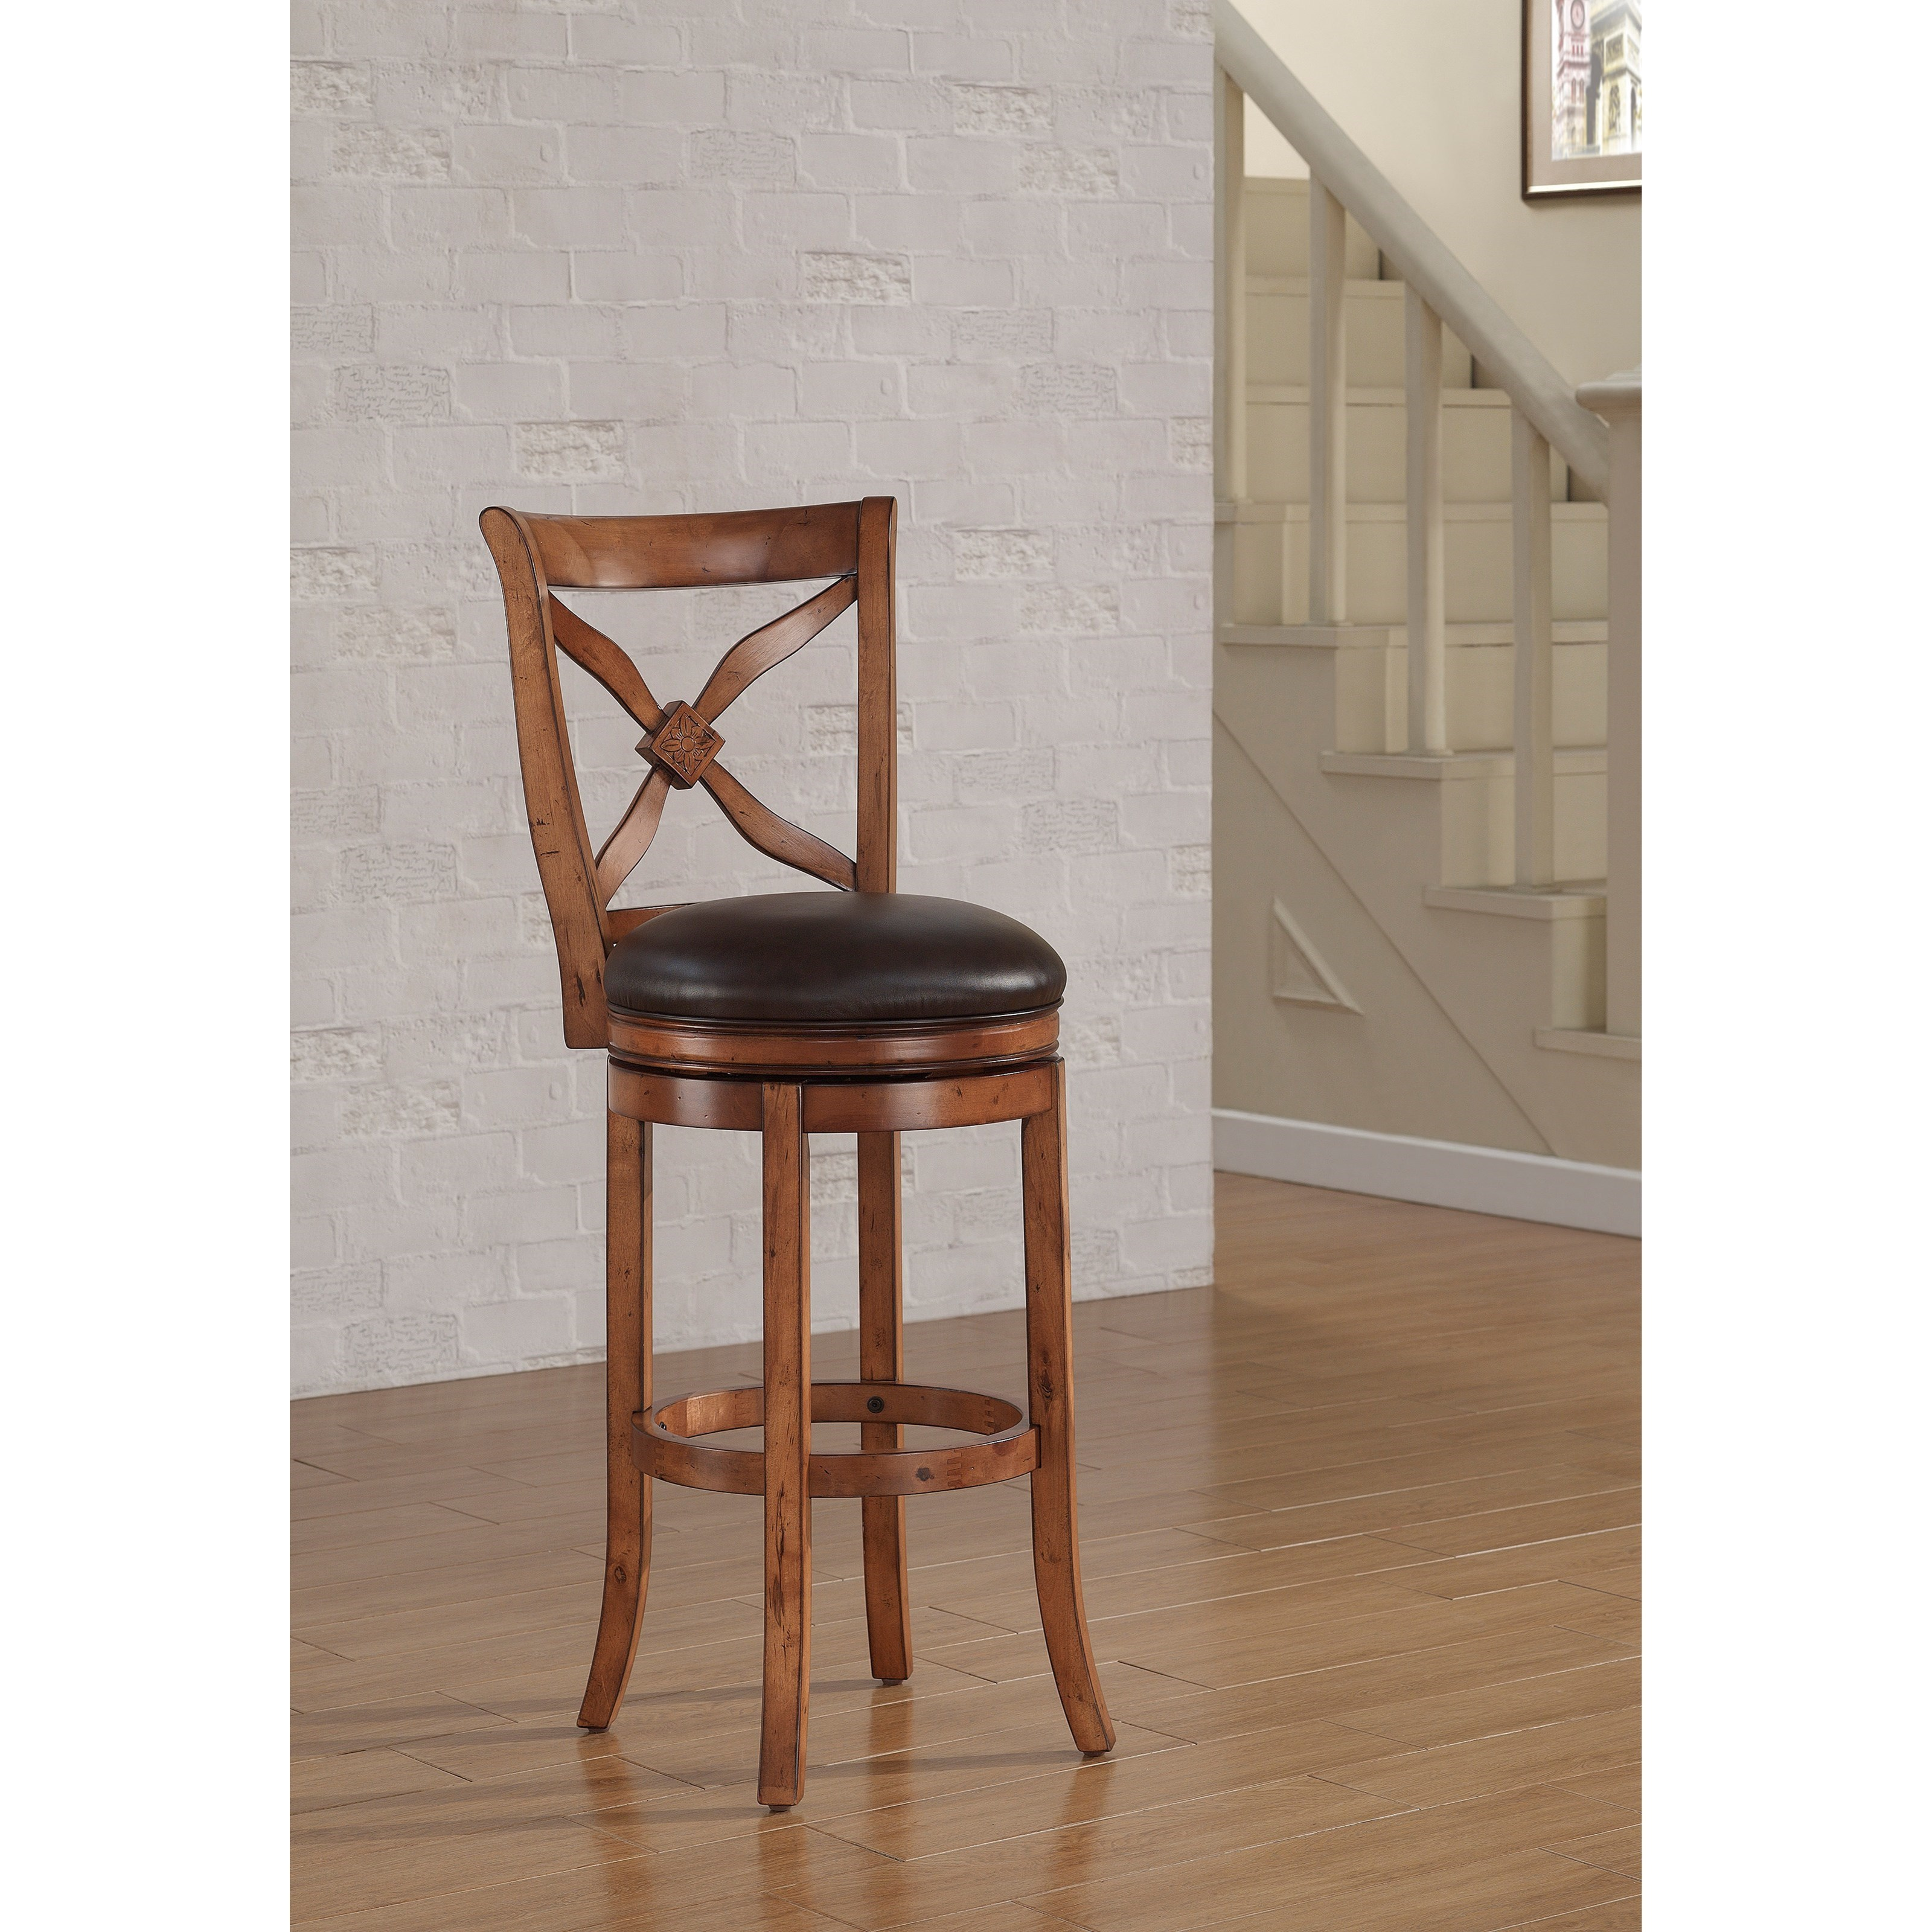 American Woodcrafters Barstools Wood Swivel Stool - Item Number: B2-201-26L